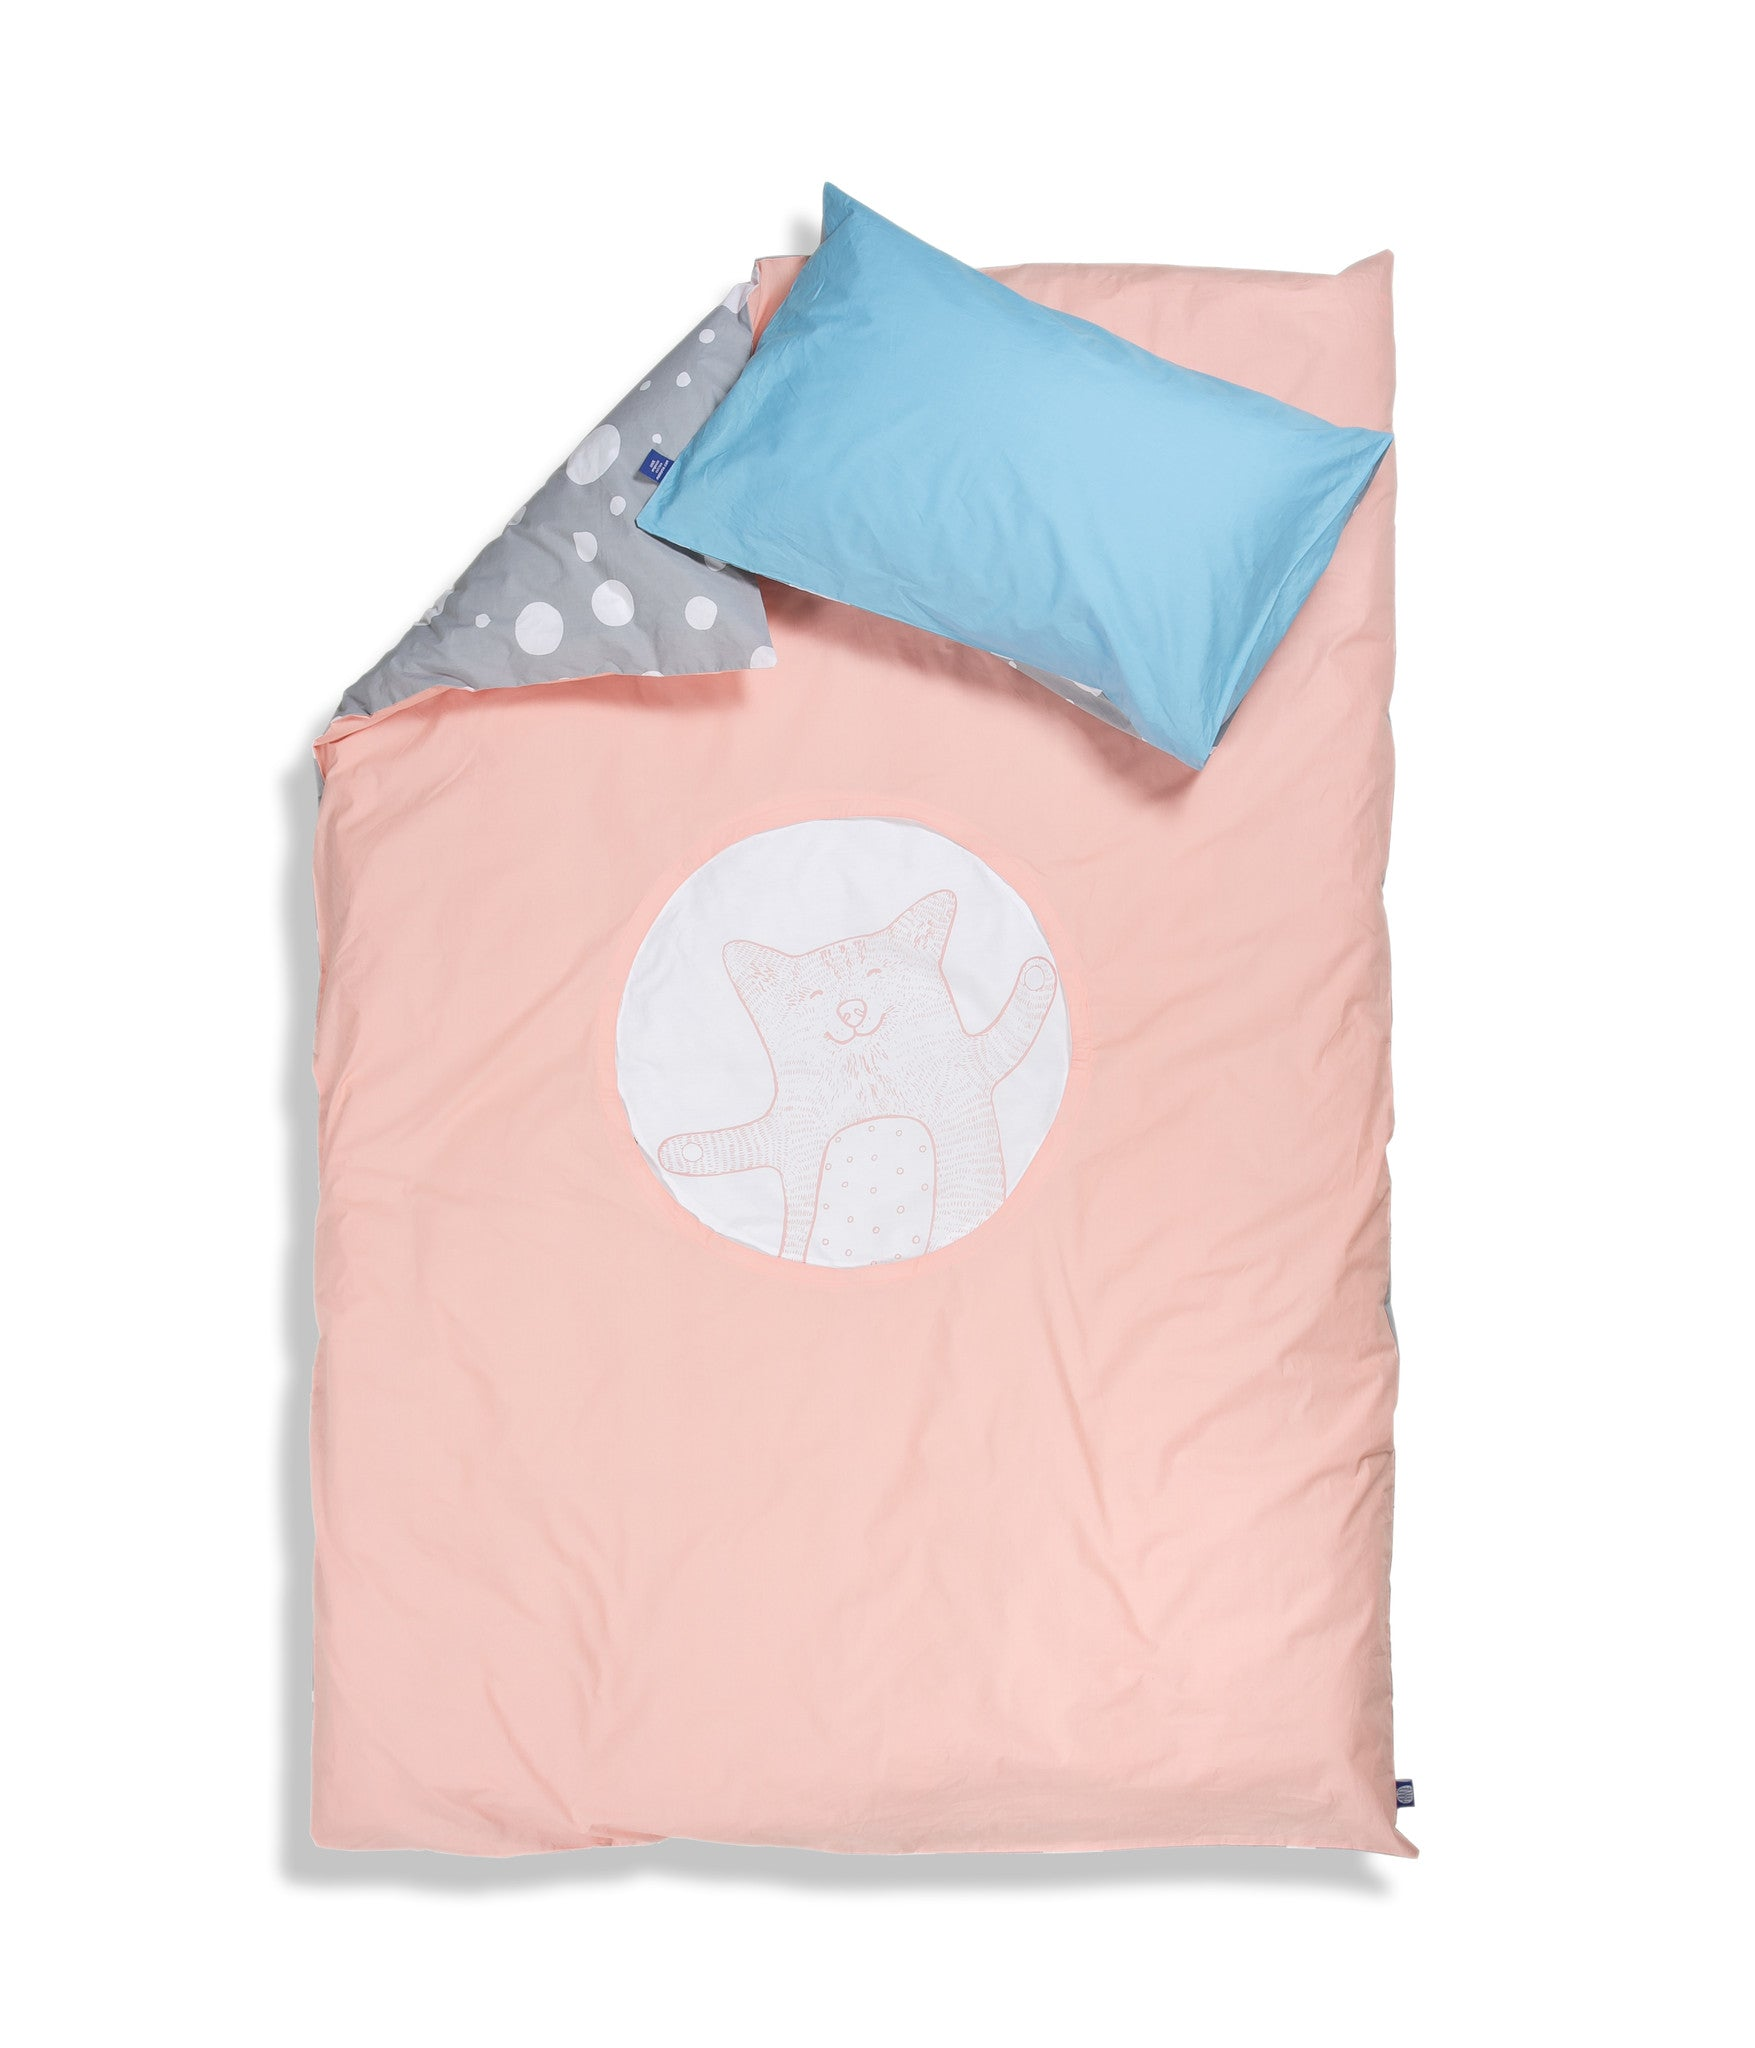 Organic cotton single bed set. Kids bedding. Blue pillow case and pink duvet cover with cat. Dotted pattern bed linen. Customised bedding.